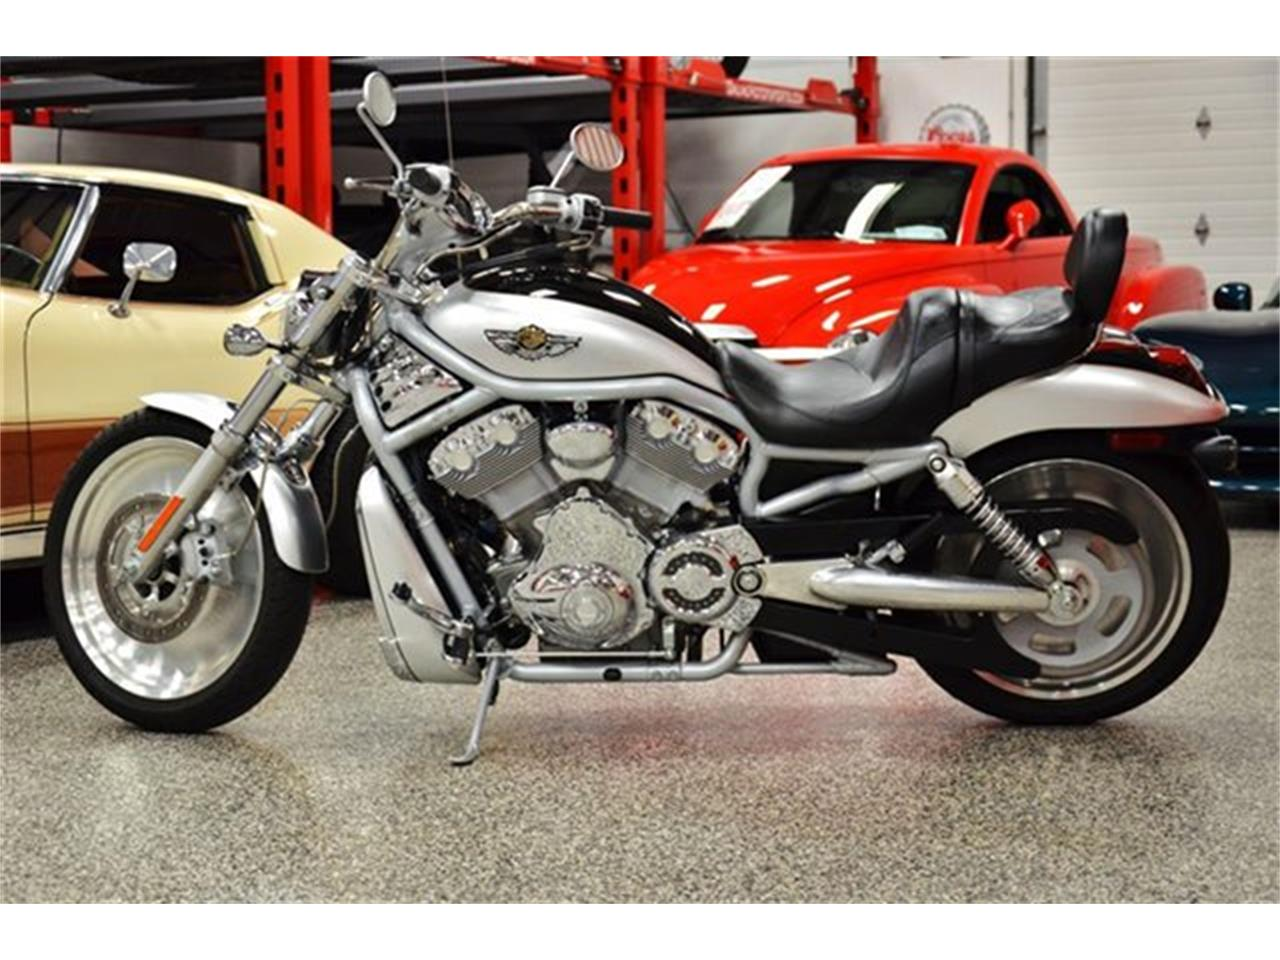 2003 Harley-Davidson VRSC for sale in Plainfield, IL – photo 13